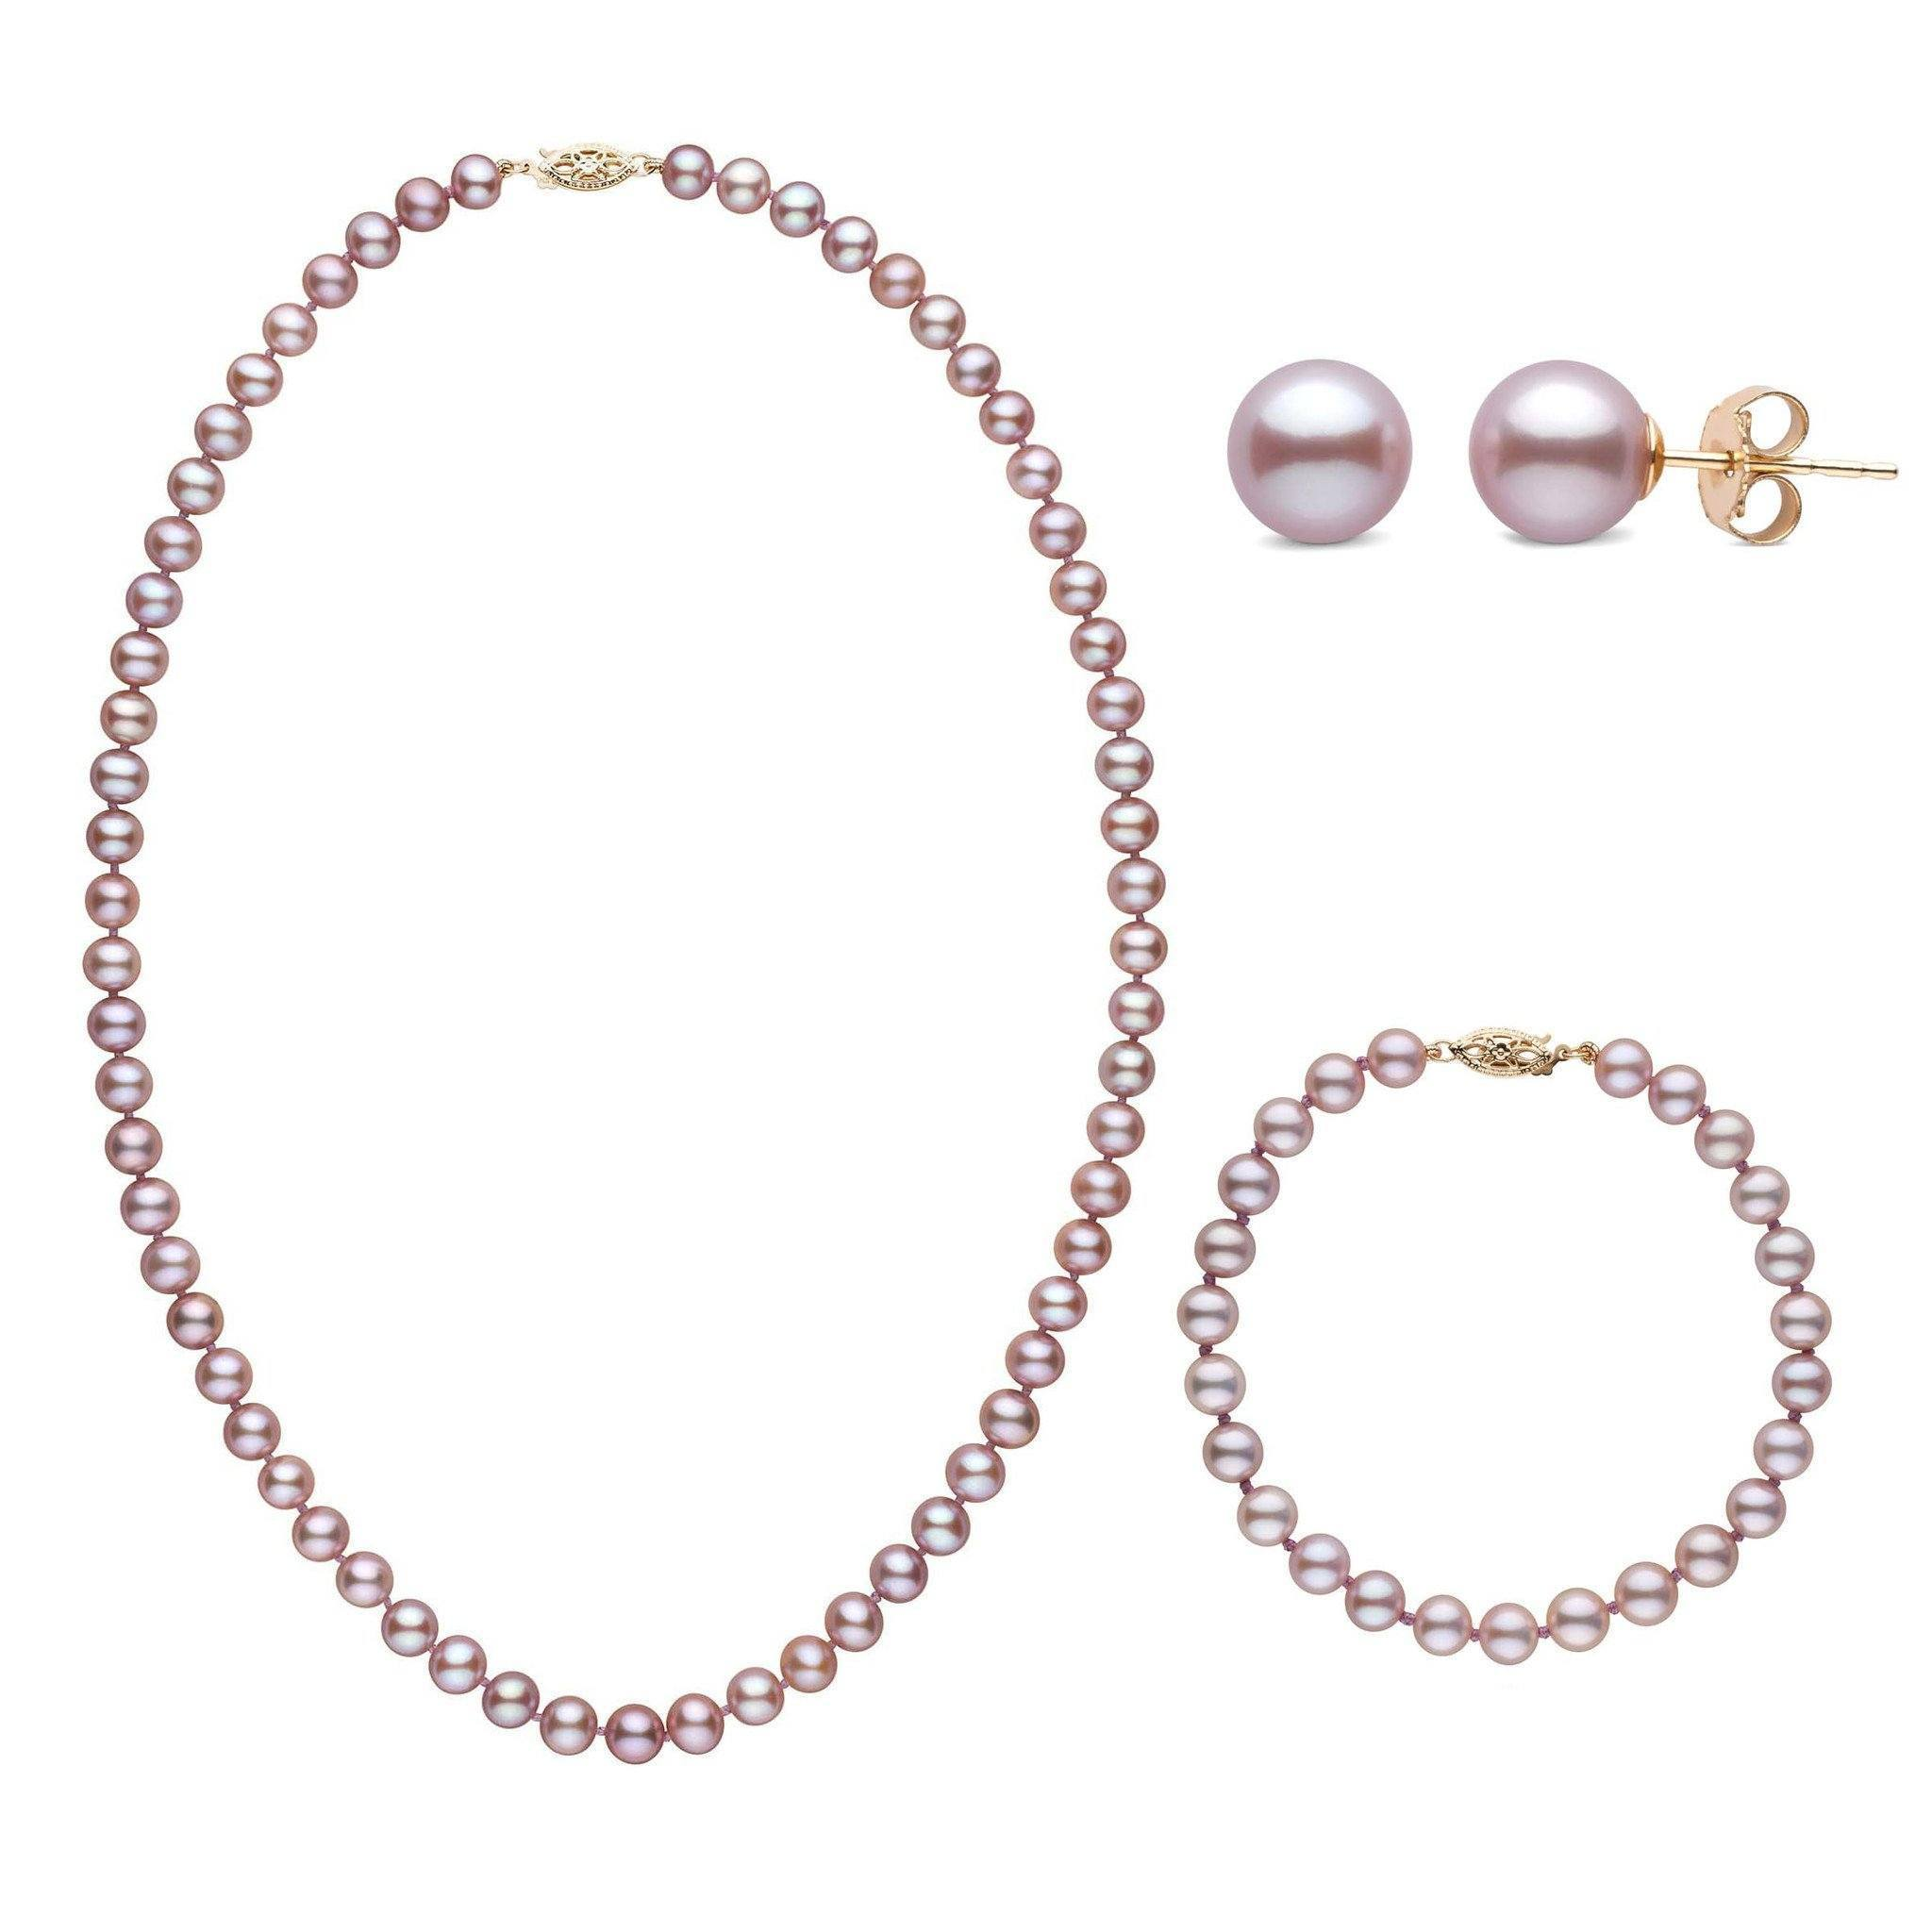 18 Inch 3 Piece Set of 6.5-7.0 mm AAA Lavender Freshwater Pearls